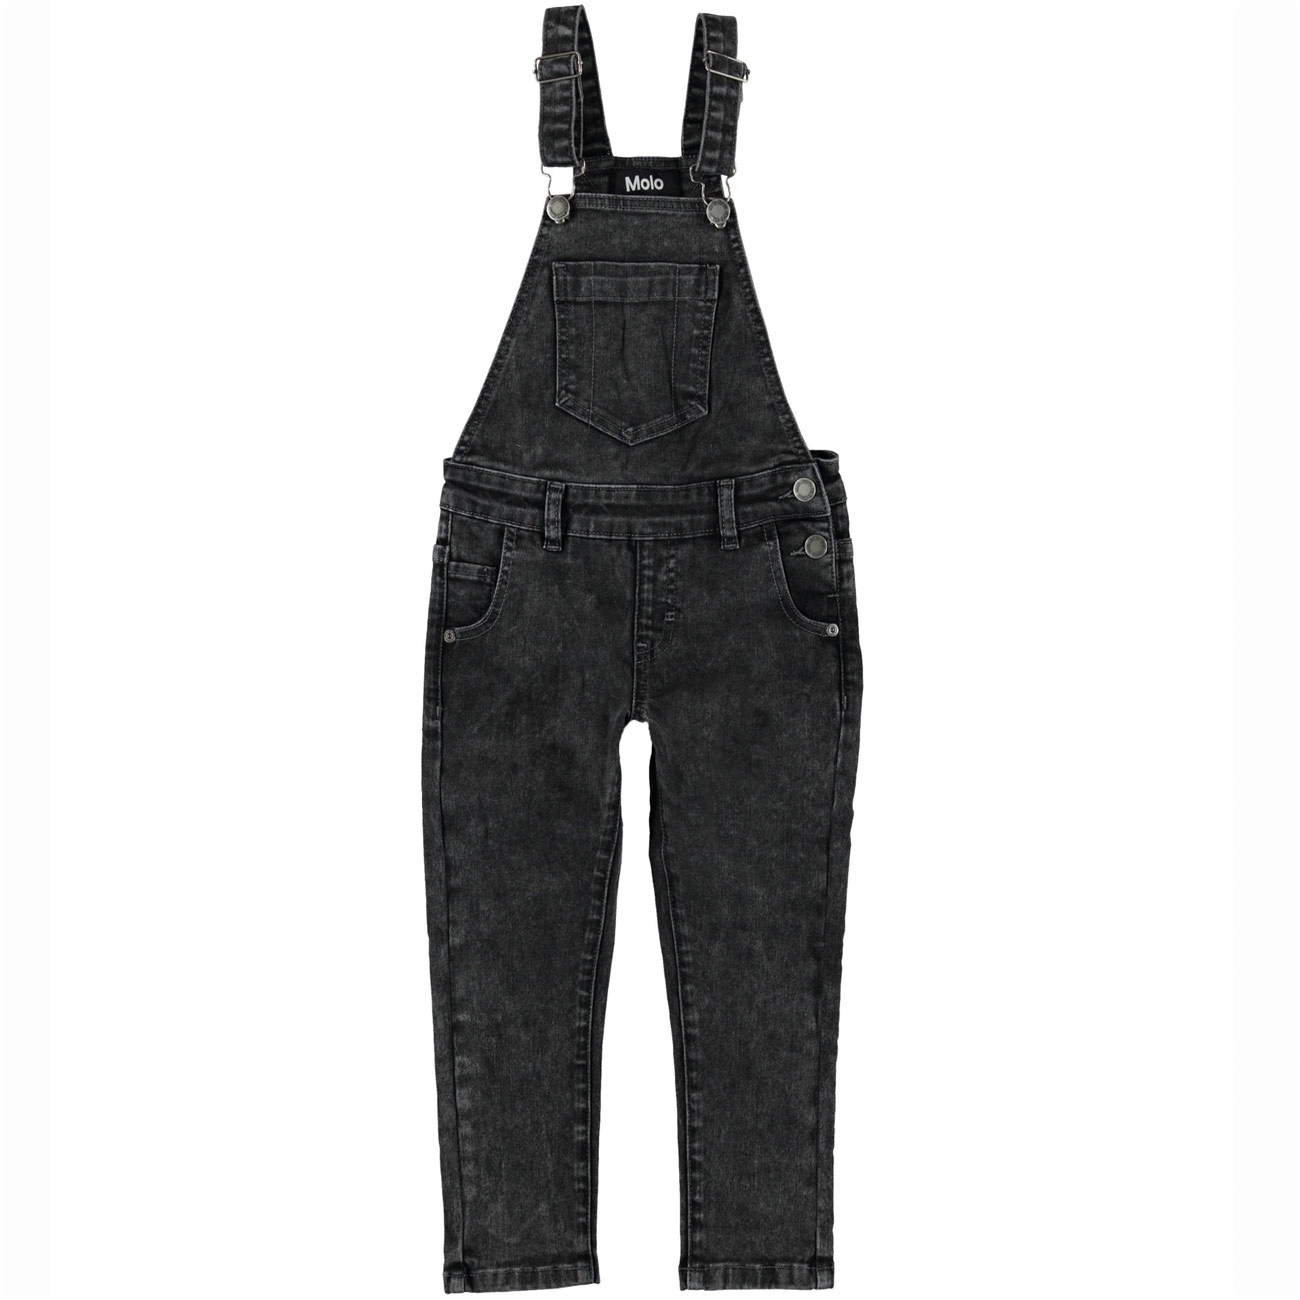 Molo Alike Stone Washed Black Overall